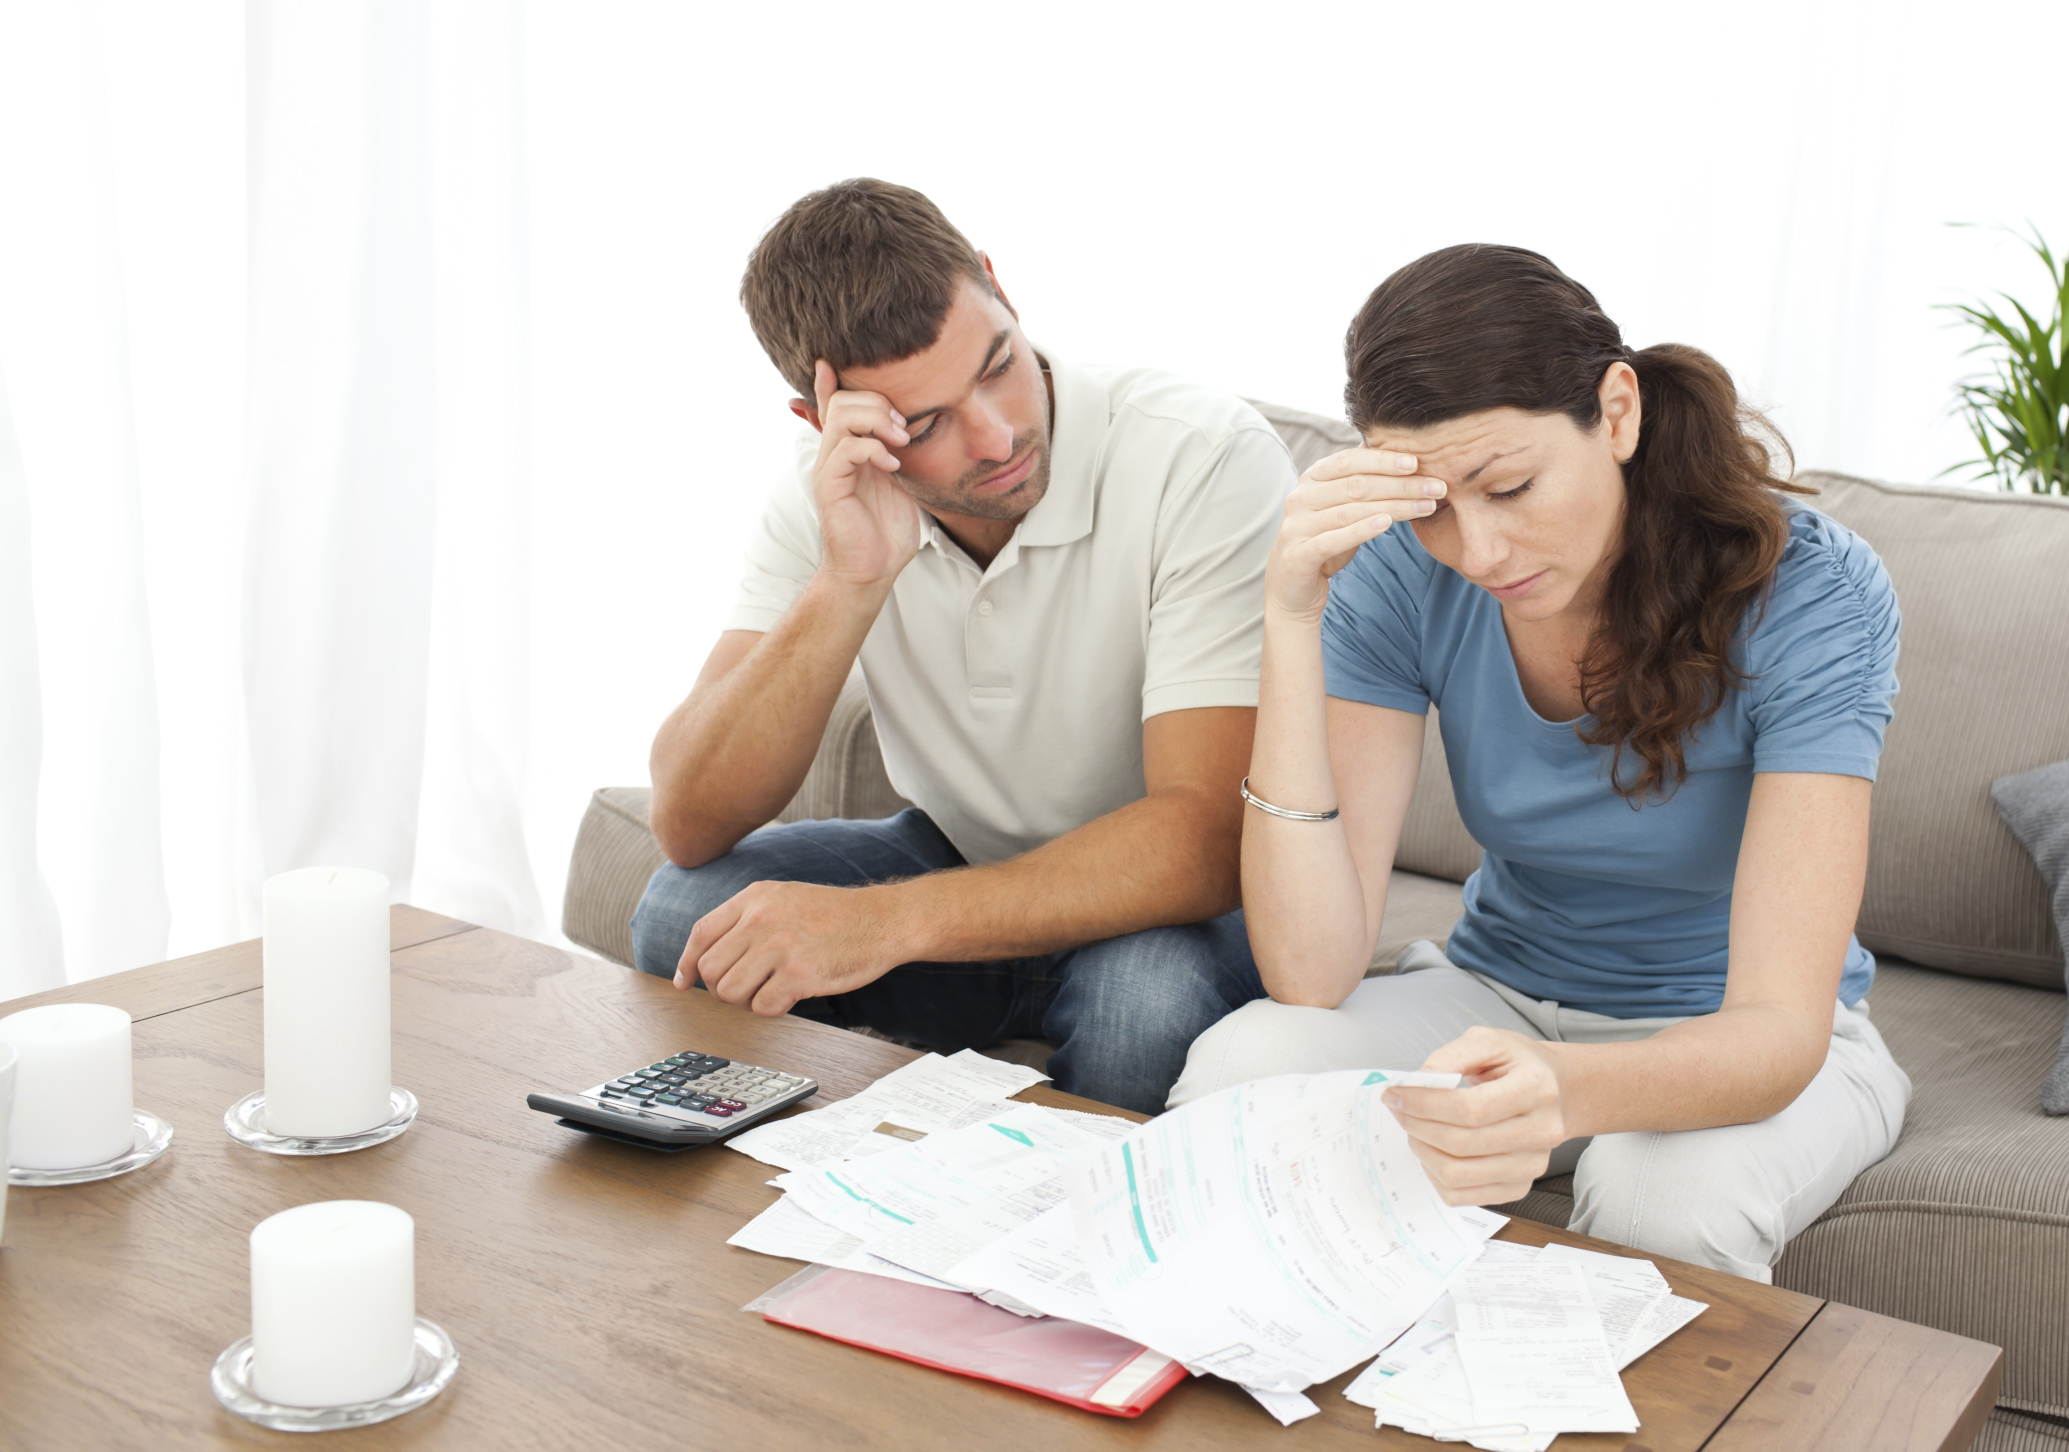 Getting your finances sorted as a couple